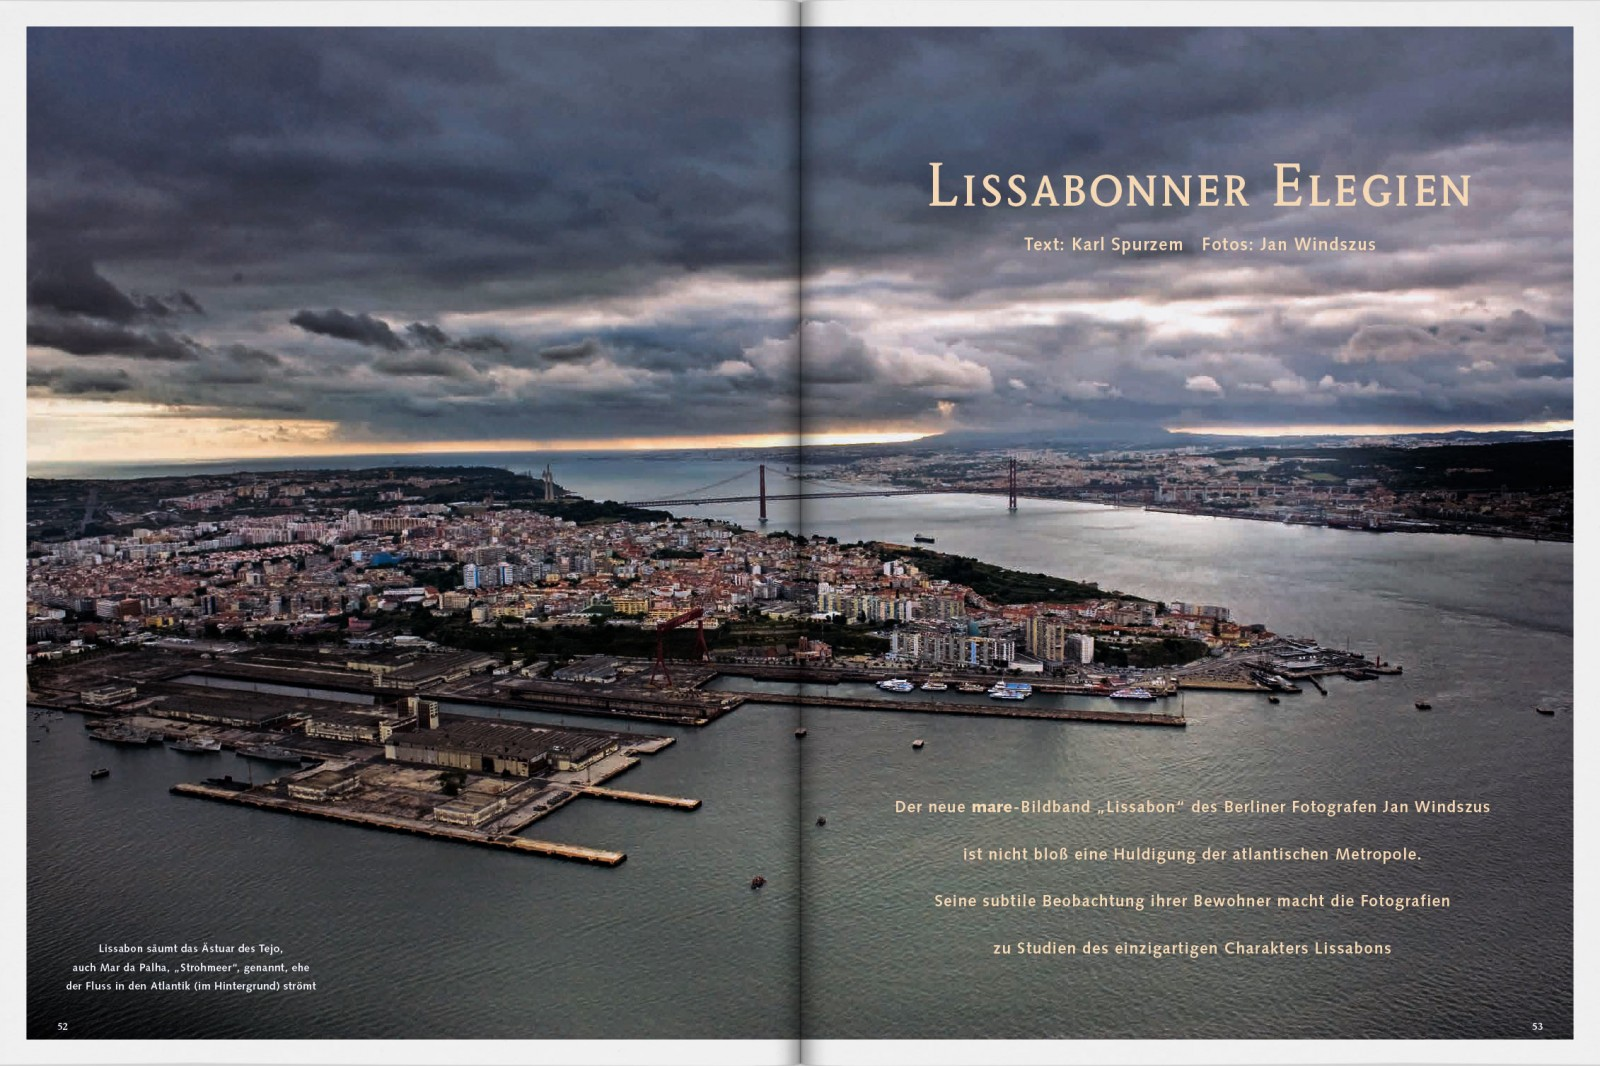 Lisbon - Press 7 by Jan Windszus